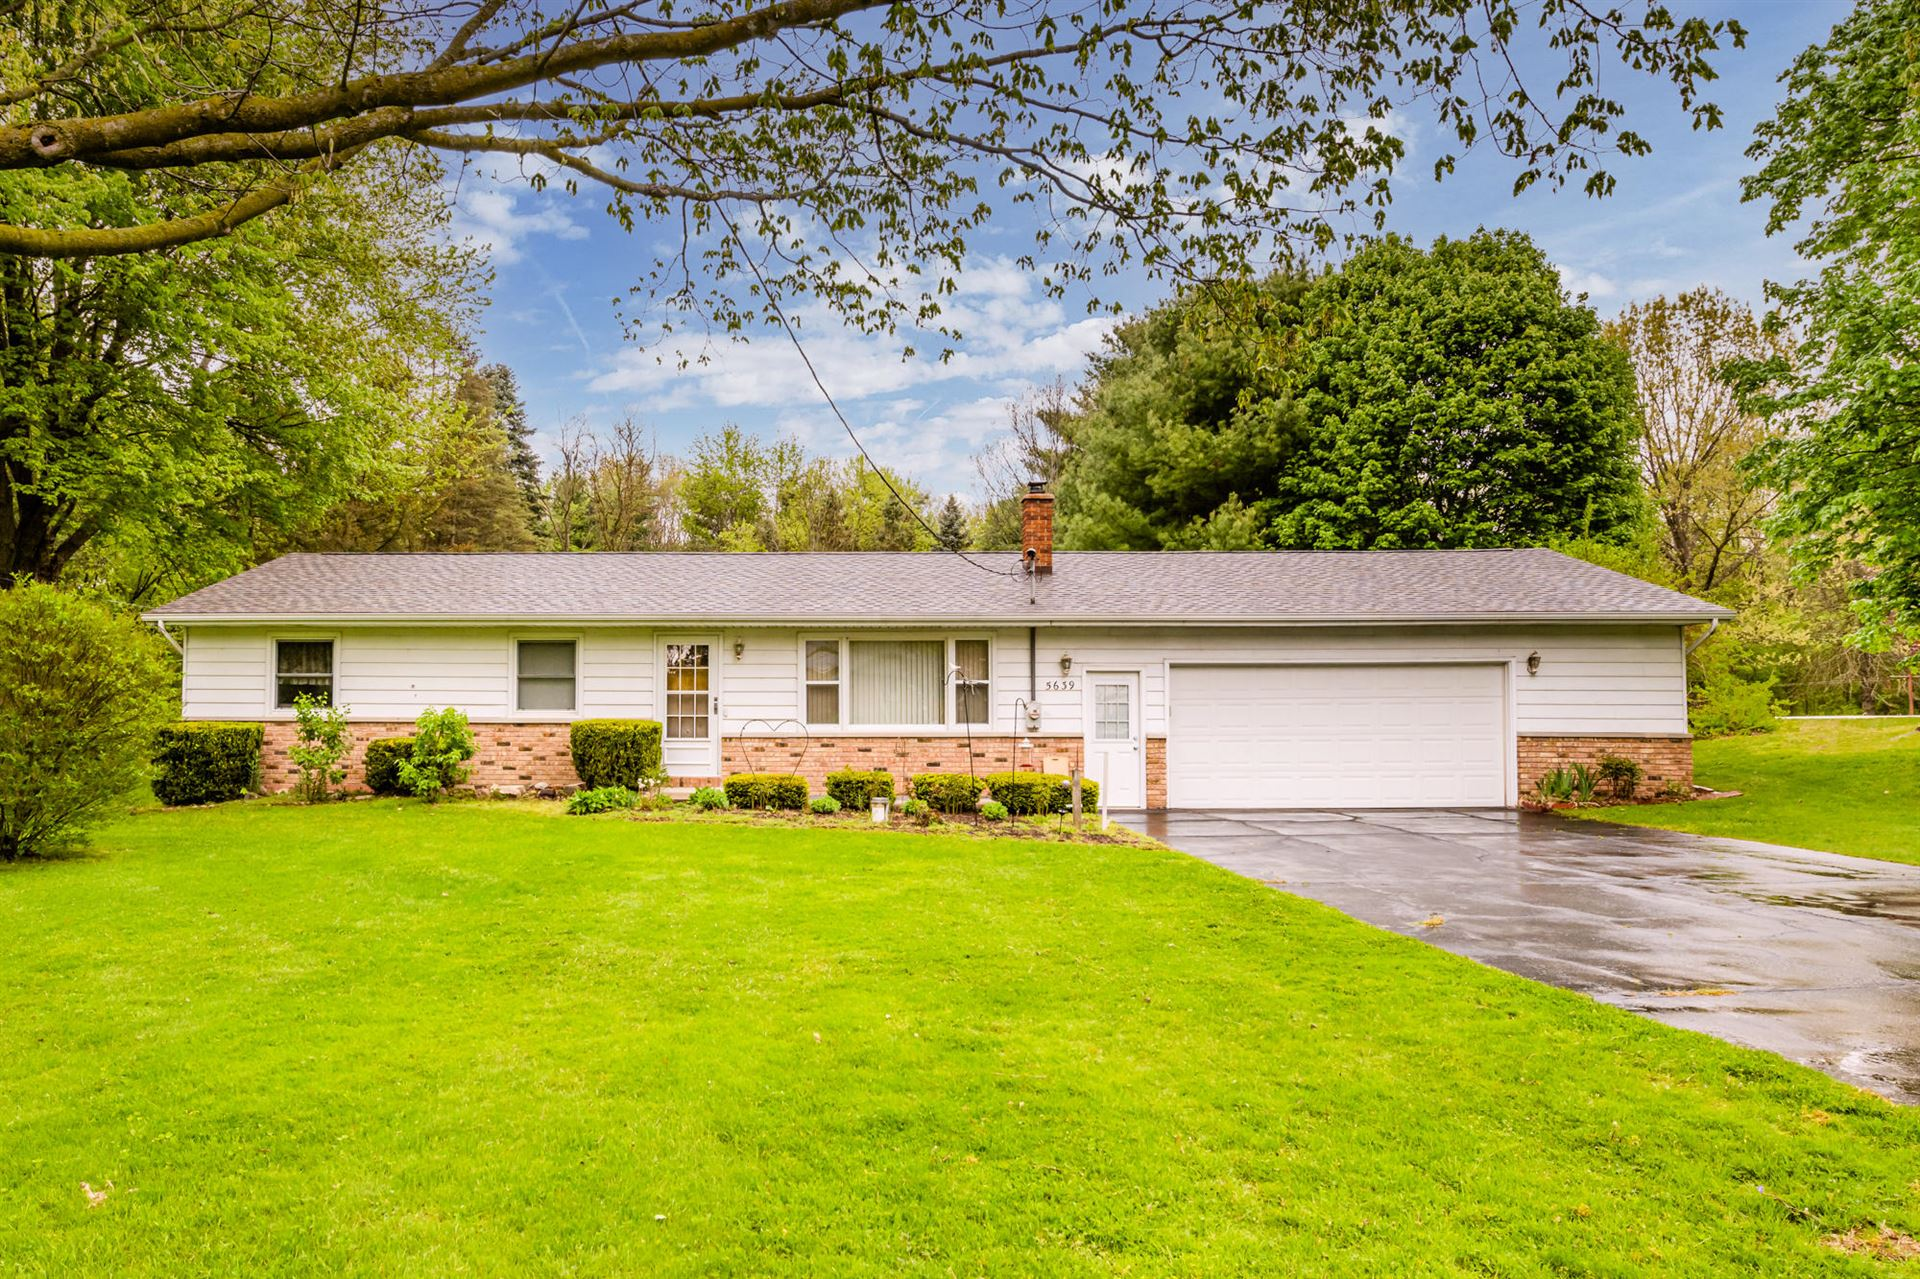 Photo for 5639 Orchard Drive, Berrien Springs, MI 49103 (MLS # 21015914)